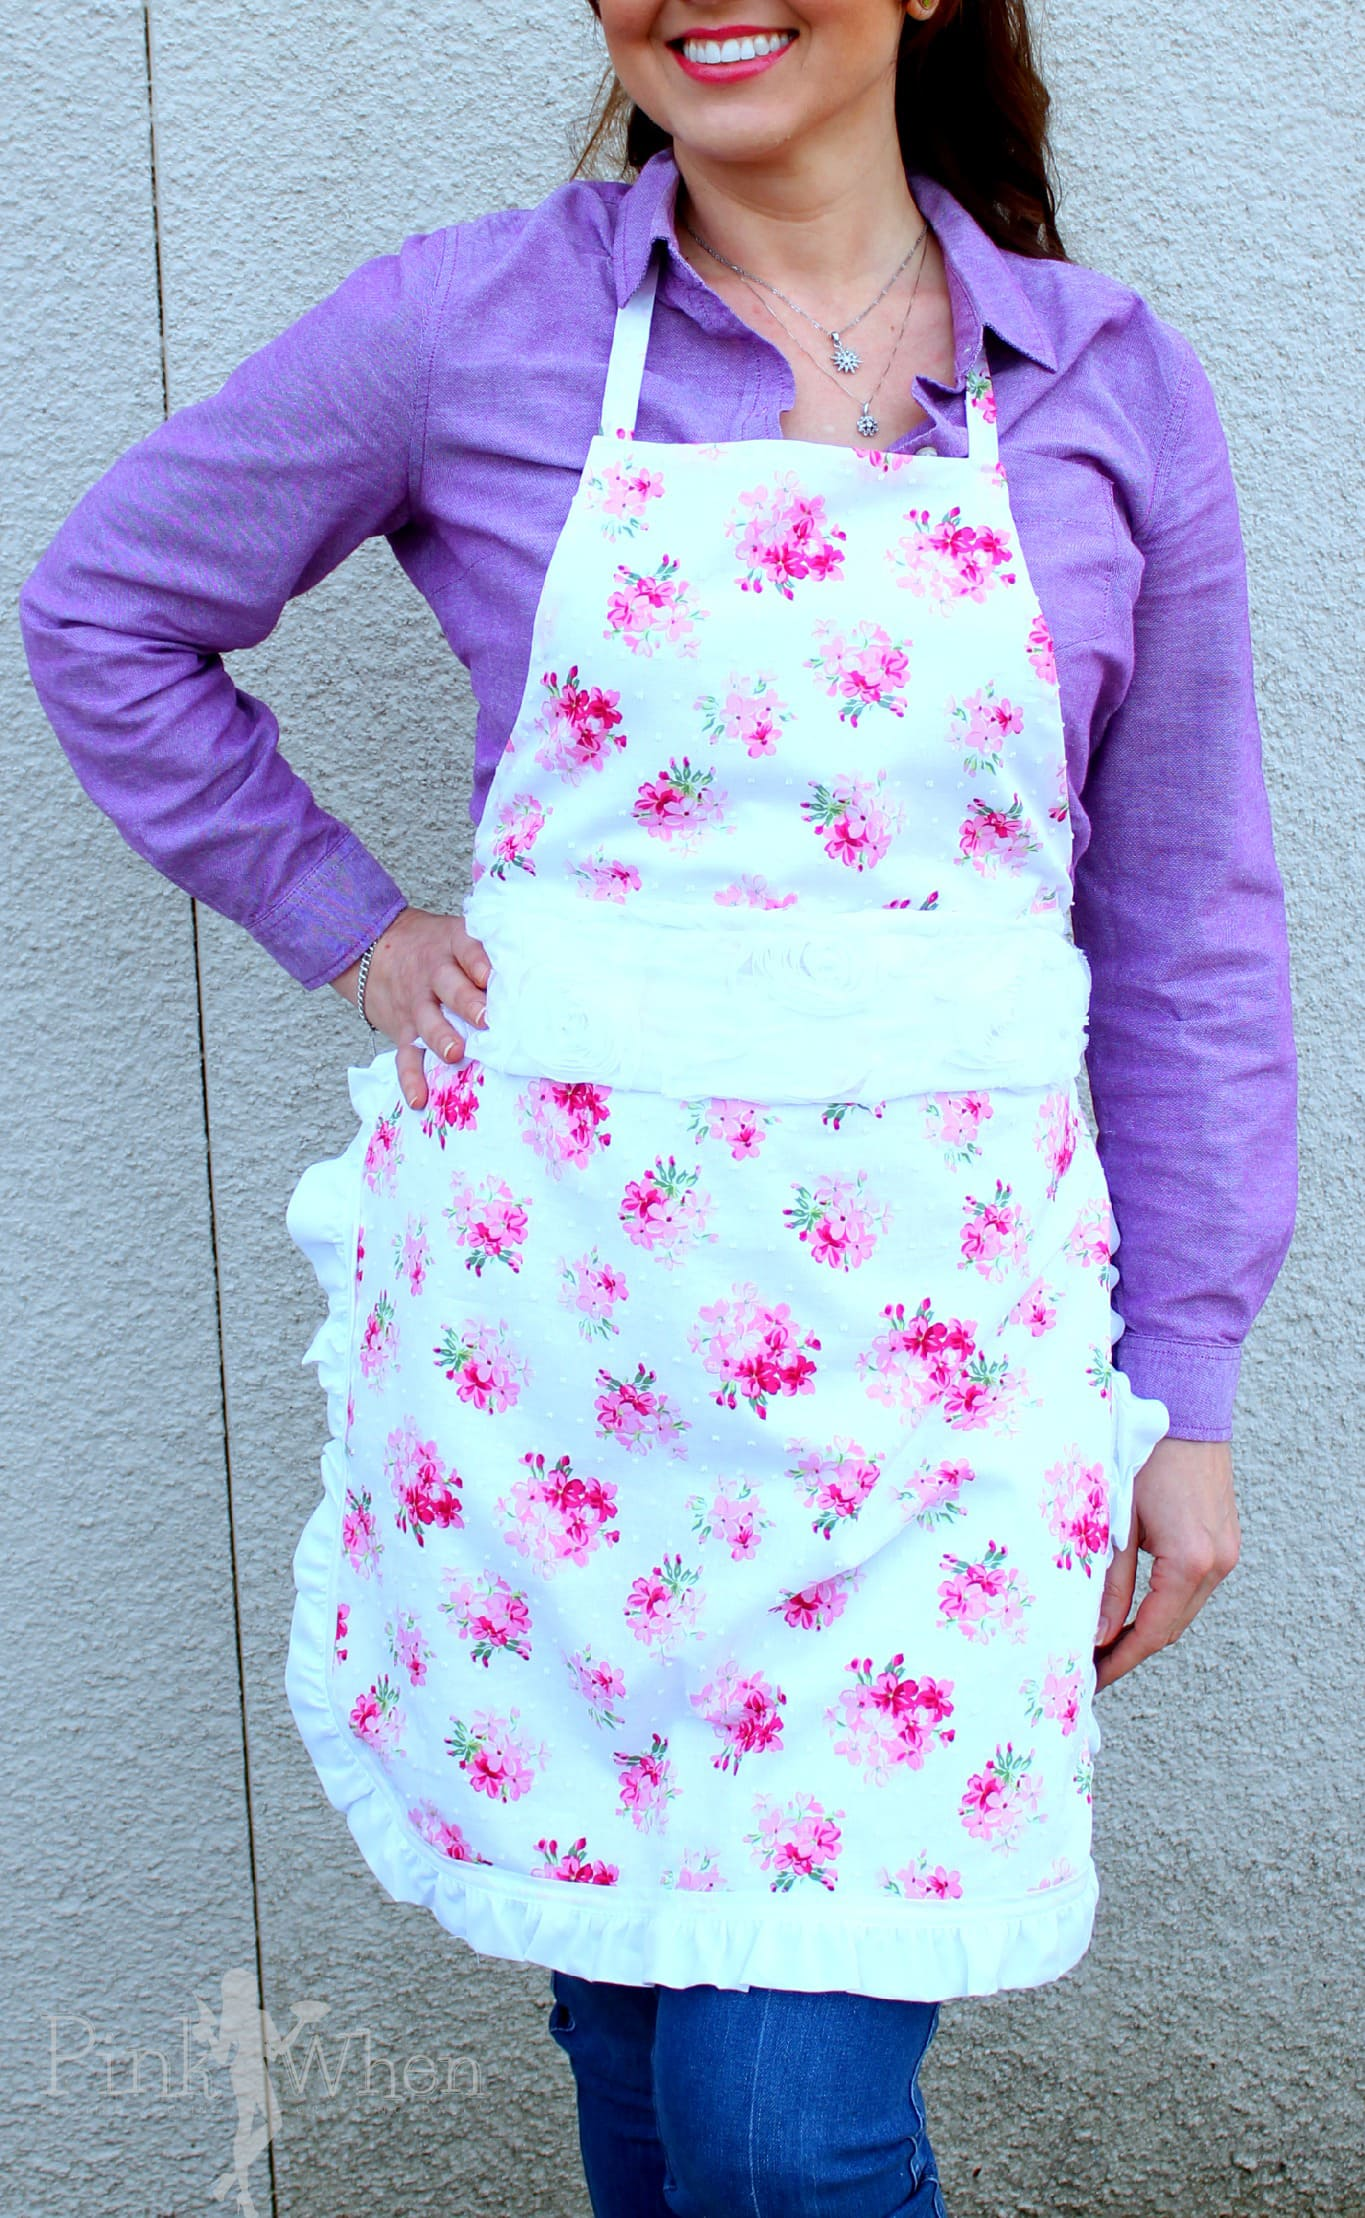 White apron joann fabrics - What S Your Favorite Spring Trend Or Craft Trend I Am Loving All Of These Floral Trends Make Sure To Head Over To The Joann Check Out All Of The Awesome